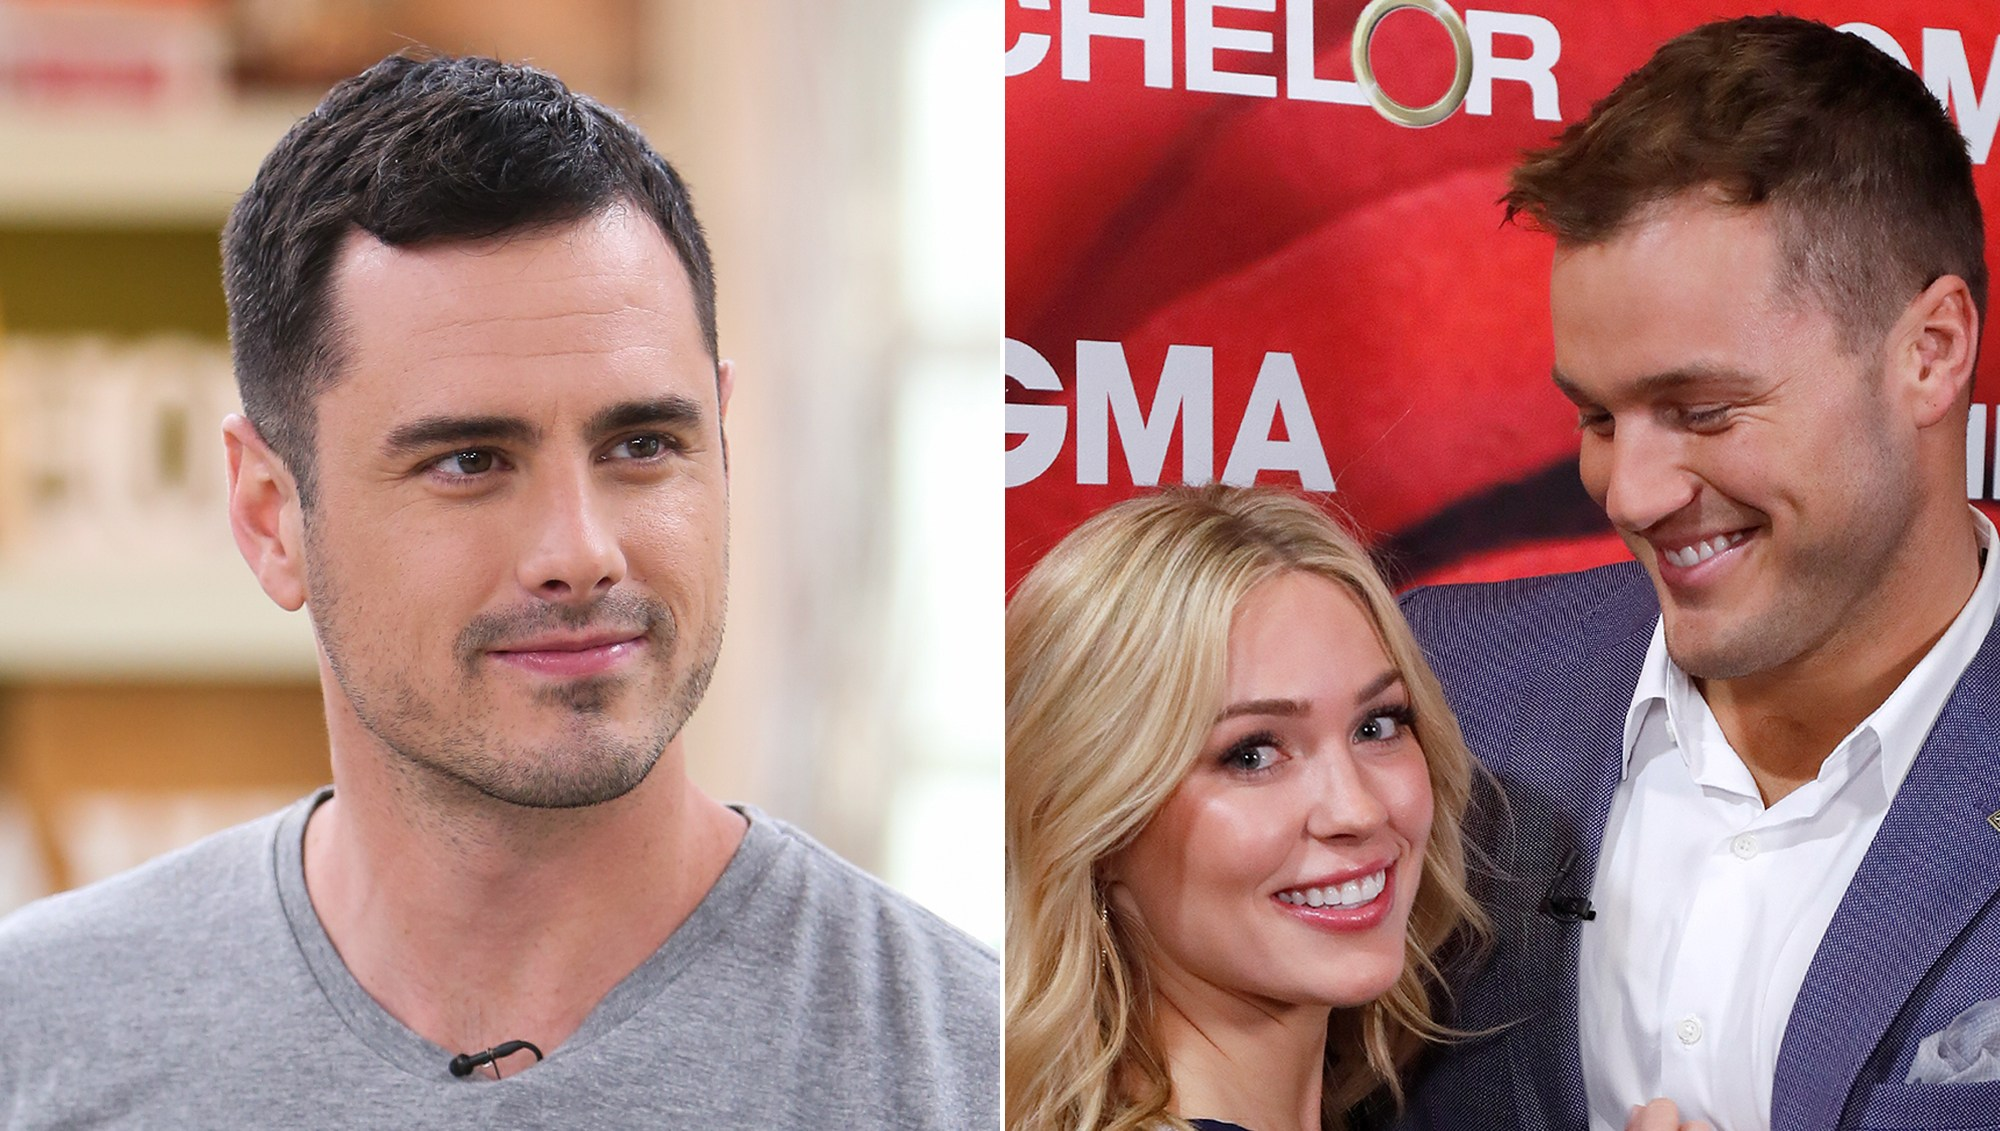 Ben Higgins Congratulates Cassie Randolph and Colton Underwood After Throwing Shade at Their Breakup